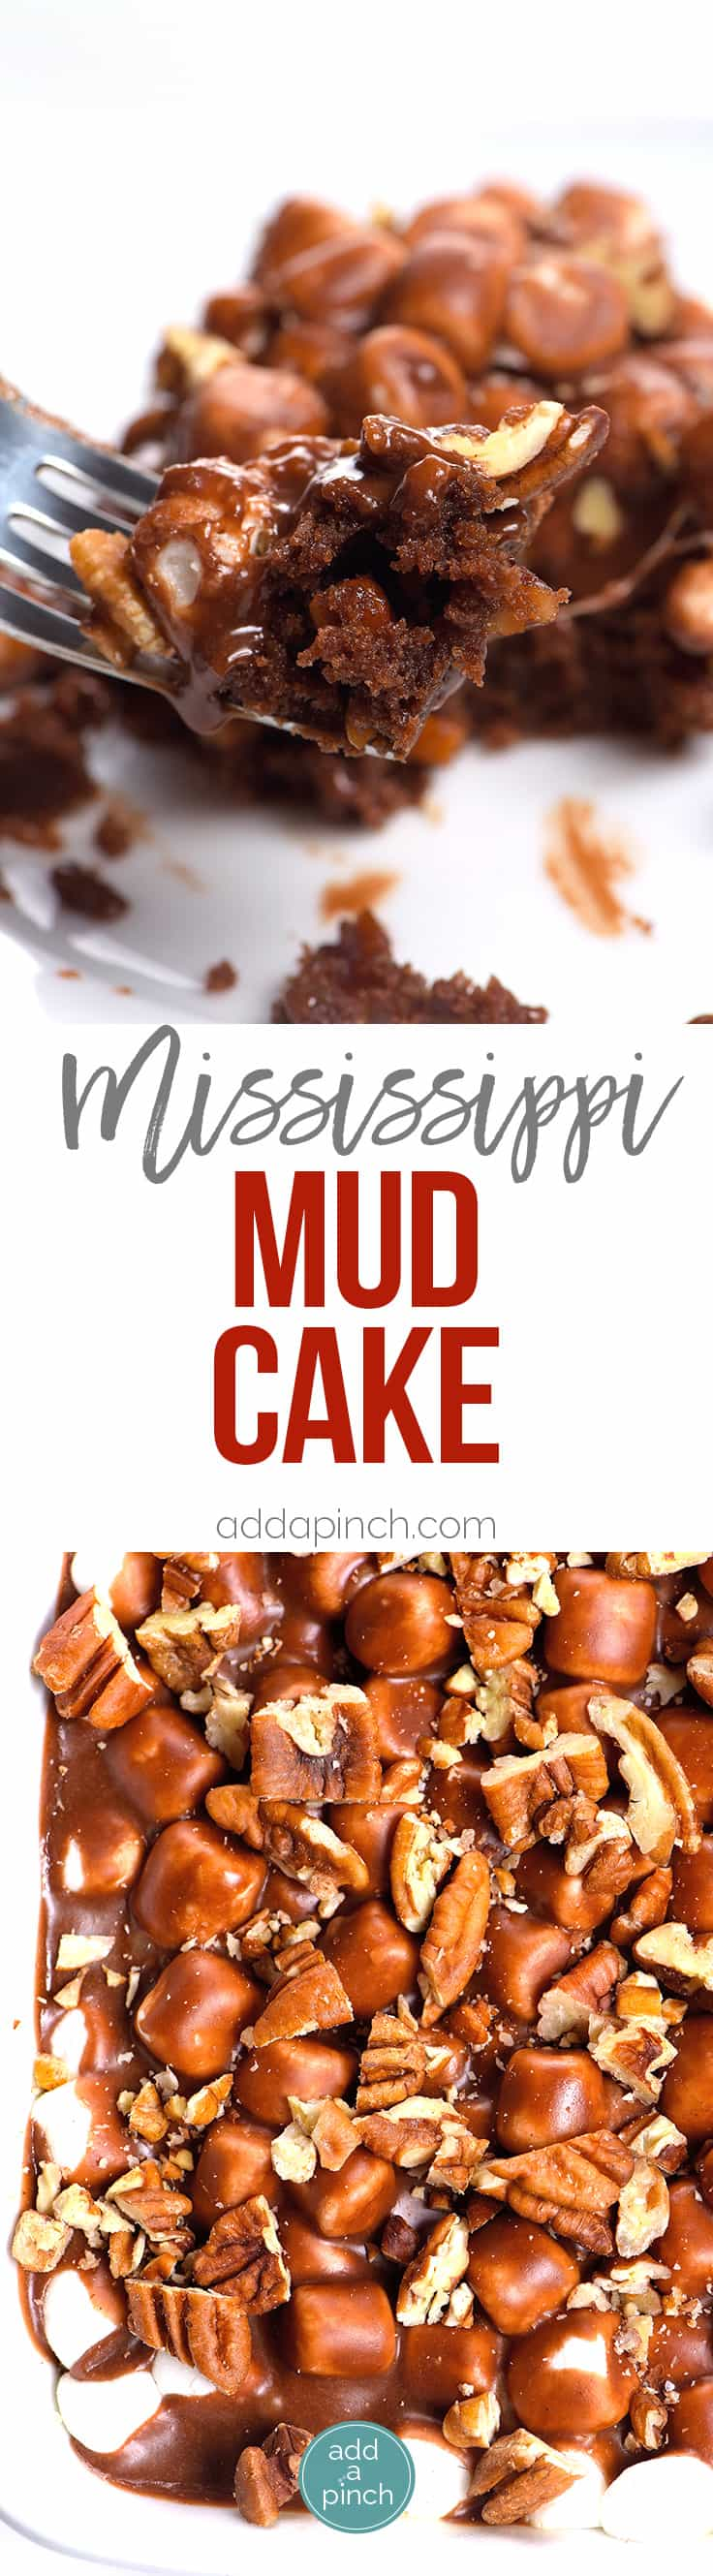 Mississippi Mud Cake Recipe - Mississippi mud cake is a simple, yet scrumptious chocolate dessert with marshmallows, pecans and a rich chocolate icing. // addapinch.com